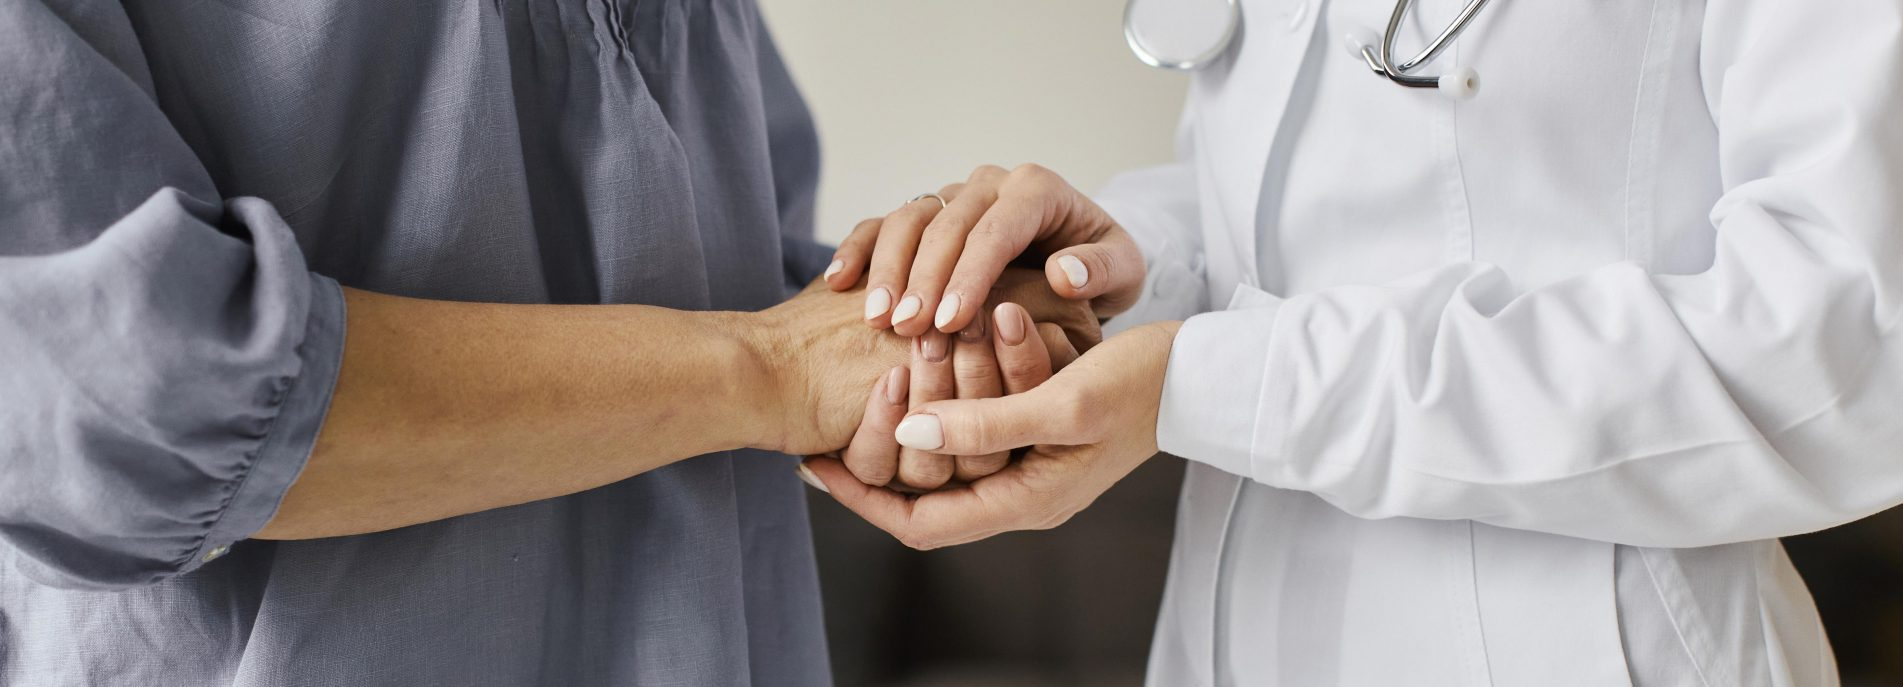 Tips for COVID-19 care with existing medical conditions